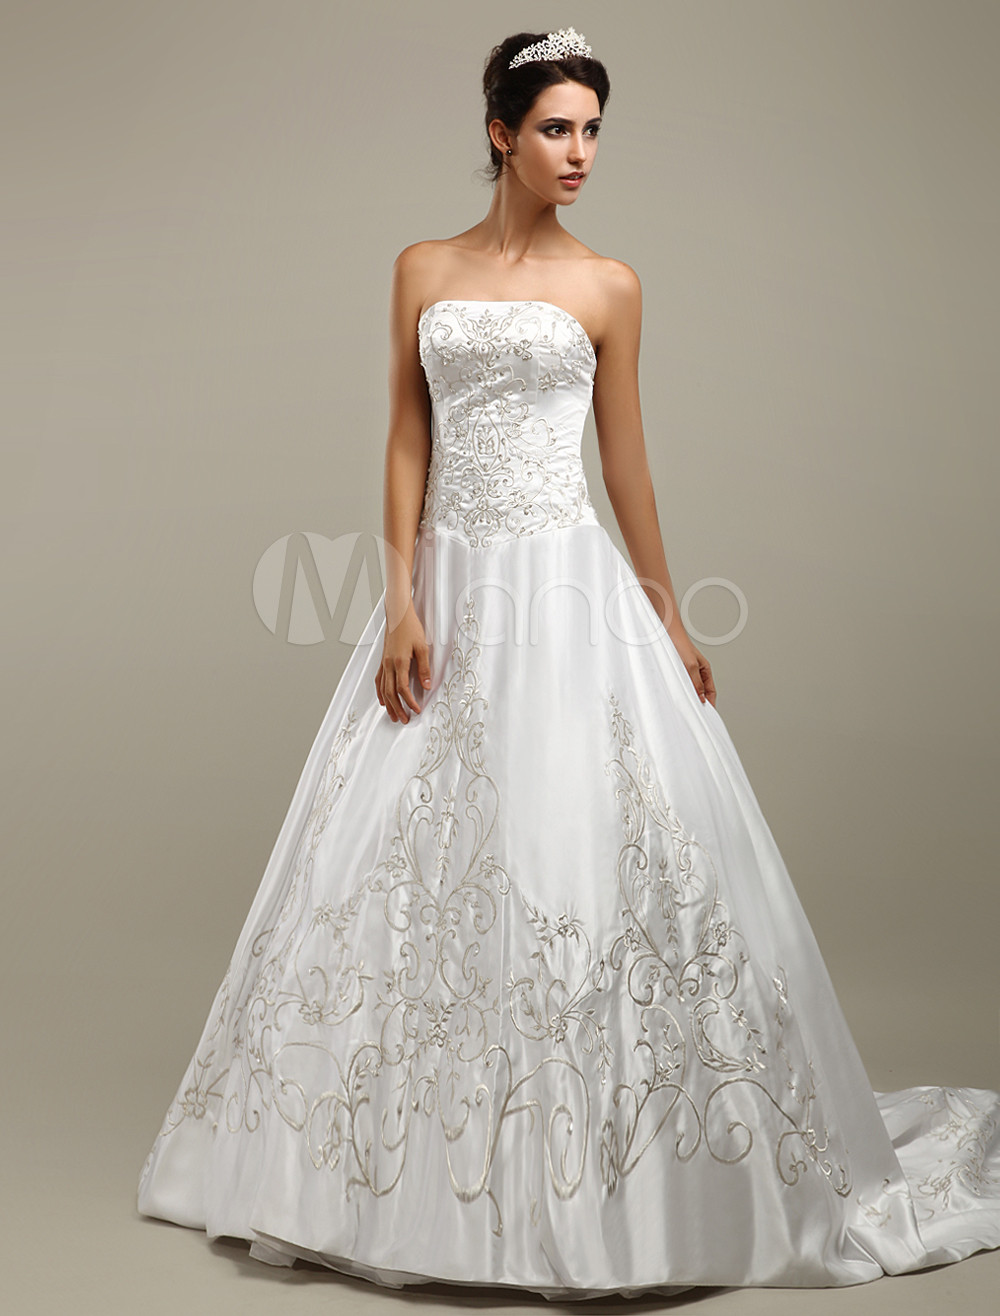 Wedding Dresses White A Line Strapless Beaded Embroidery Satin Bridal Gown With Train